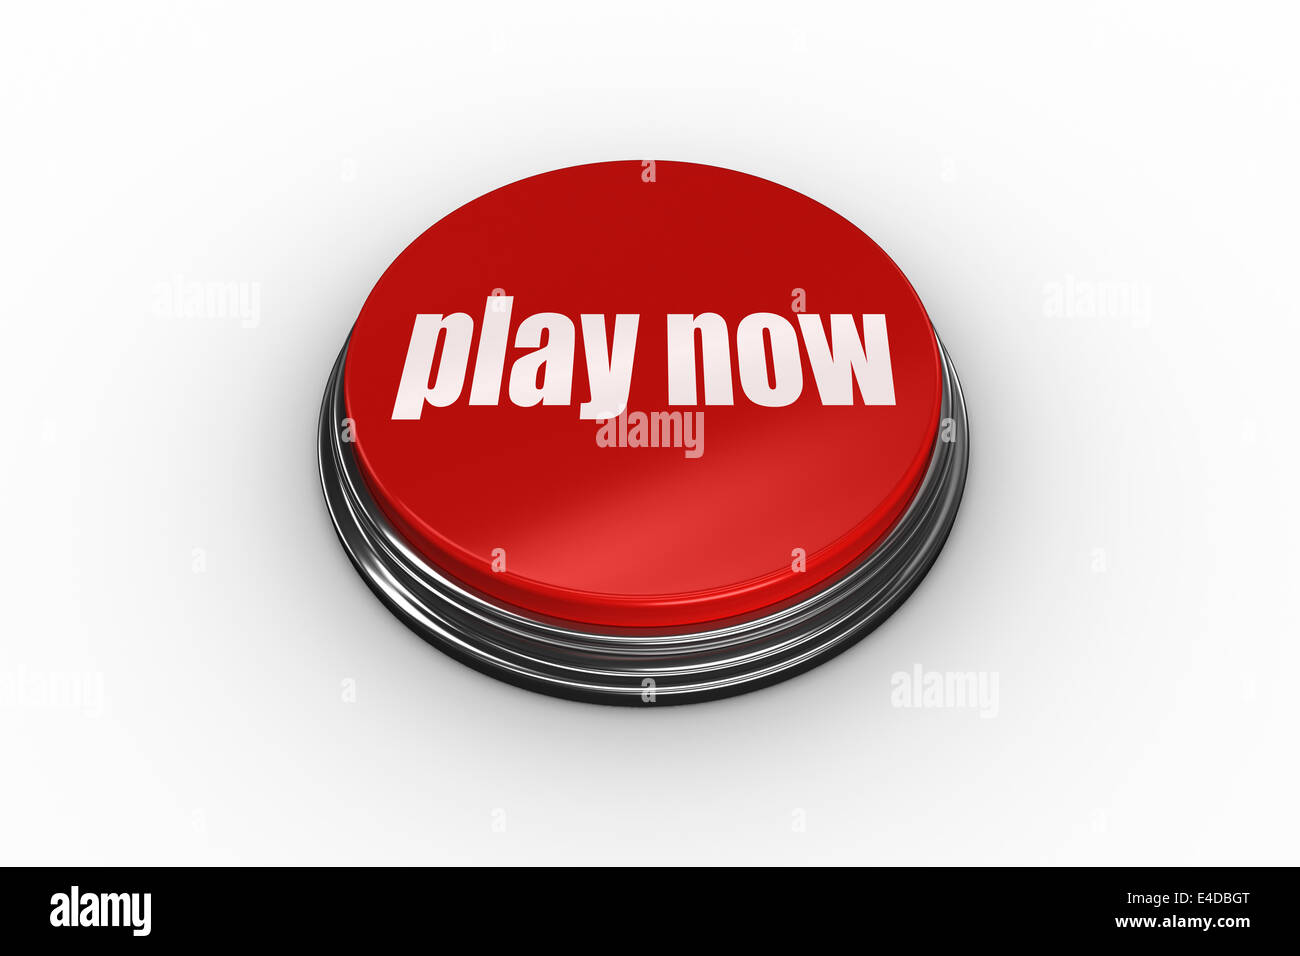 Play now on digitally generated red push button - Stock Image